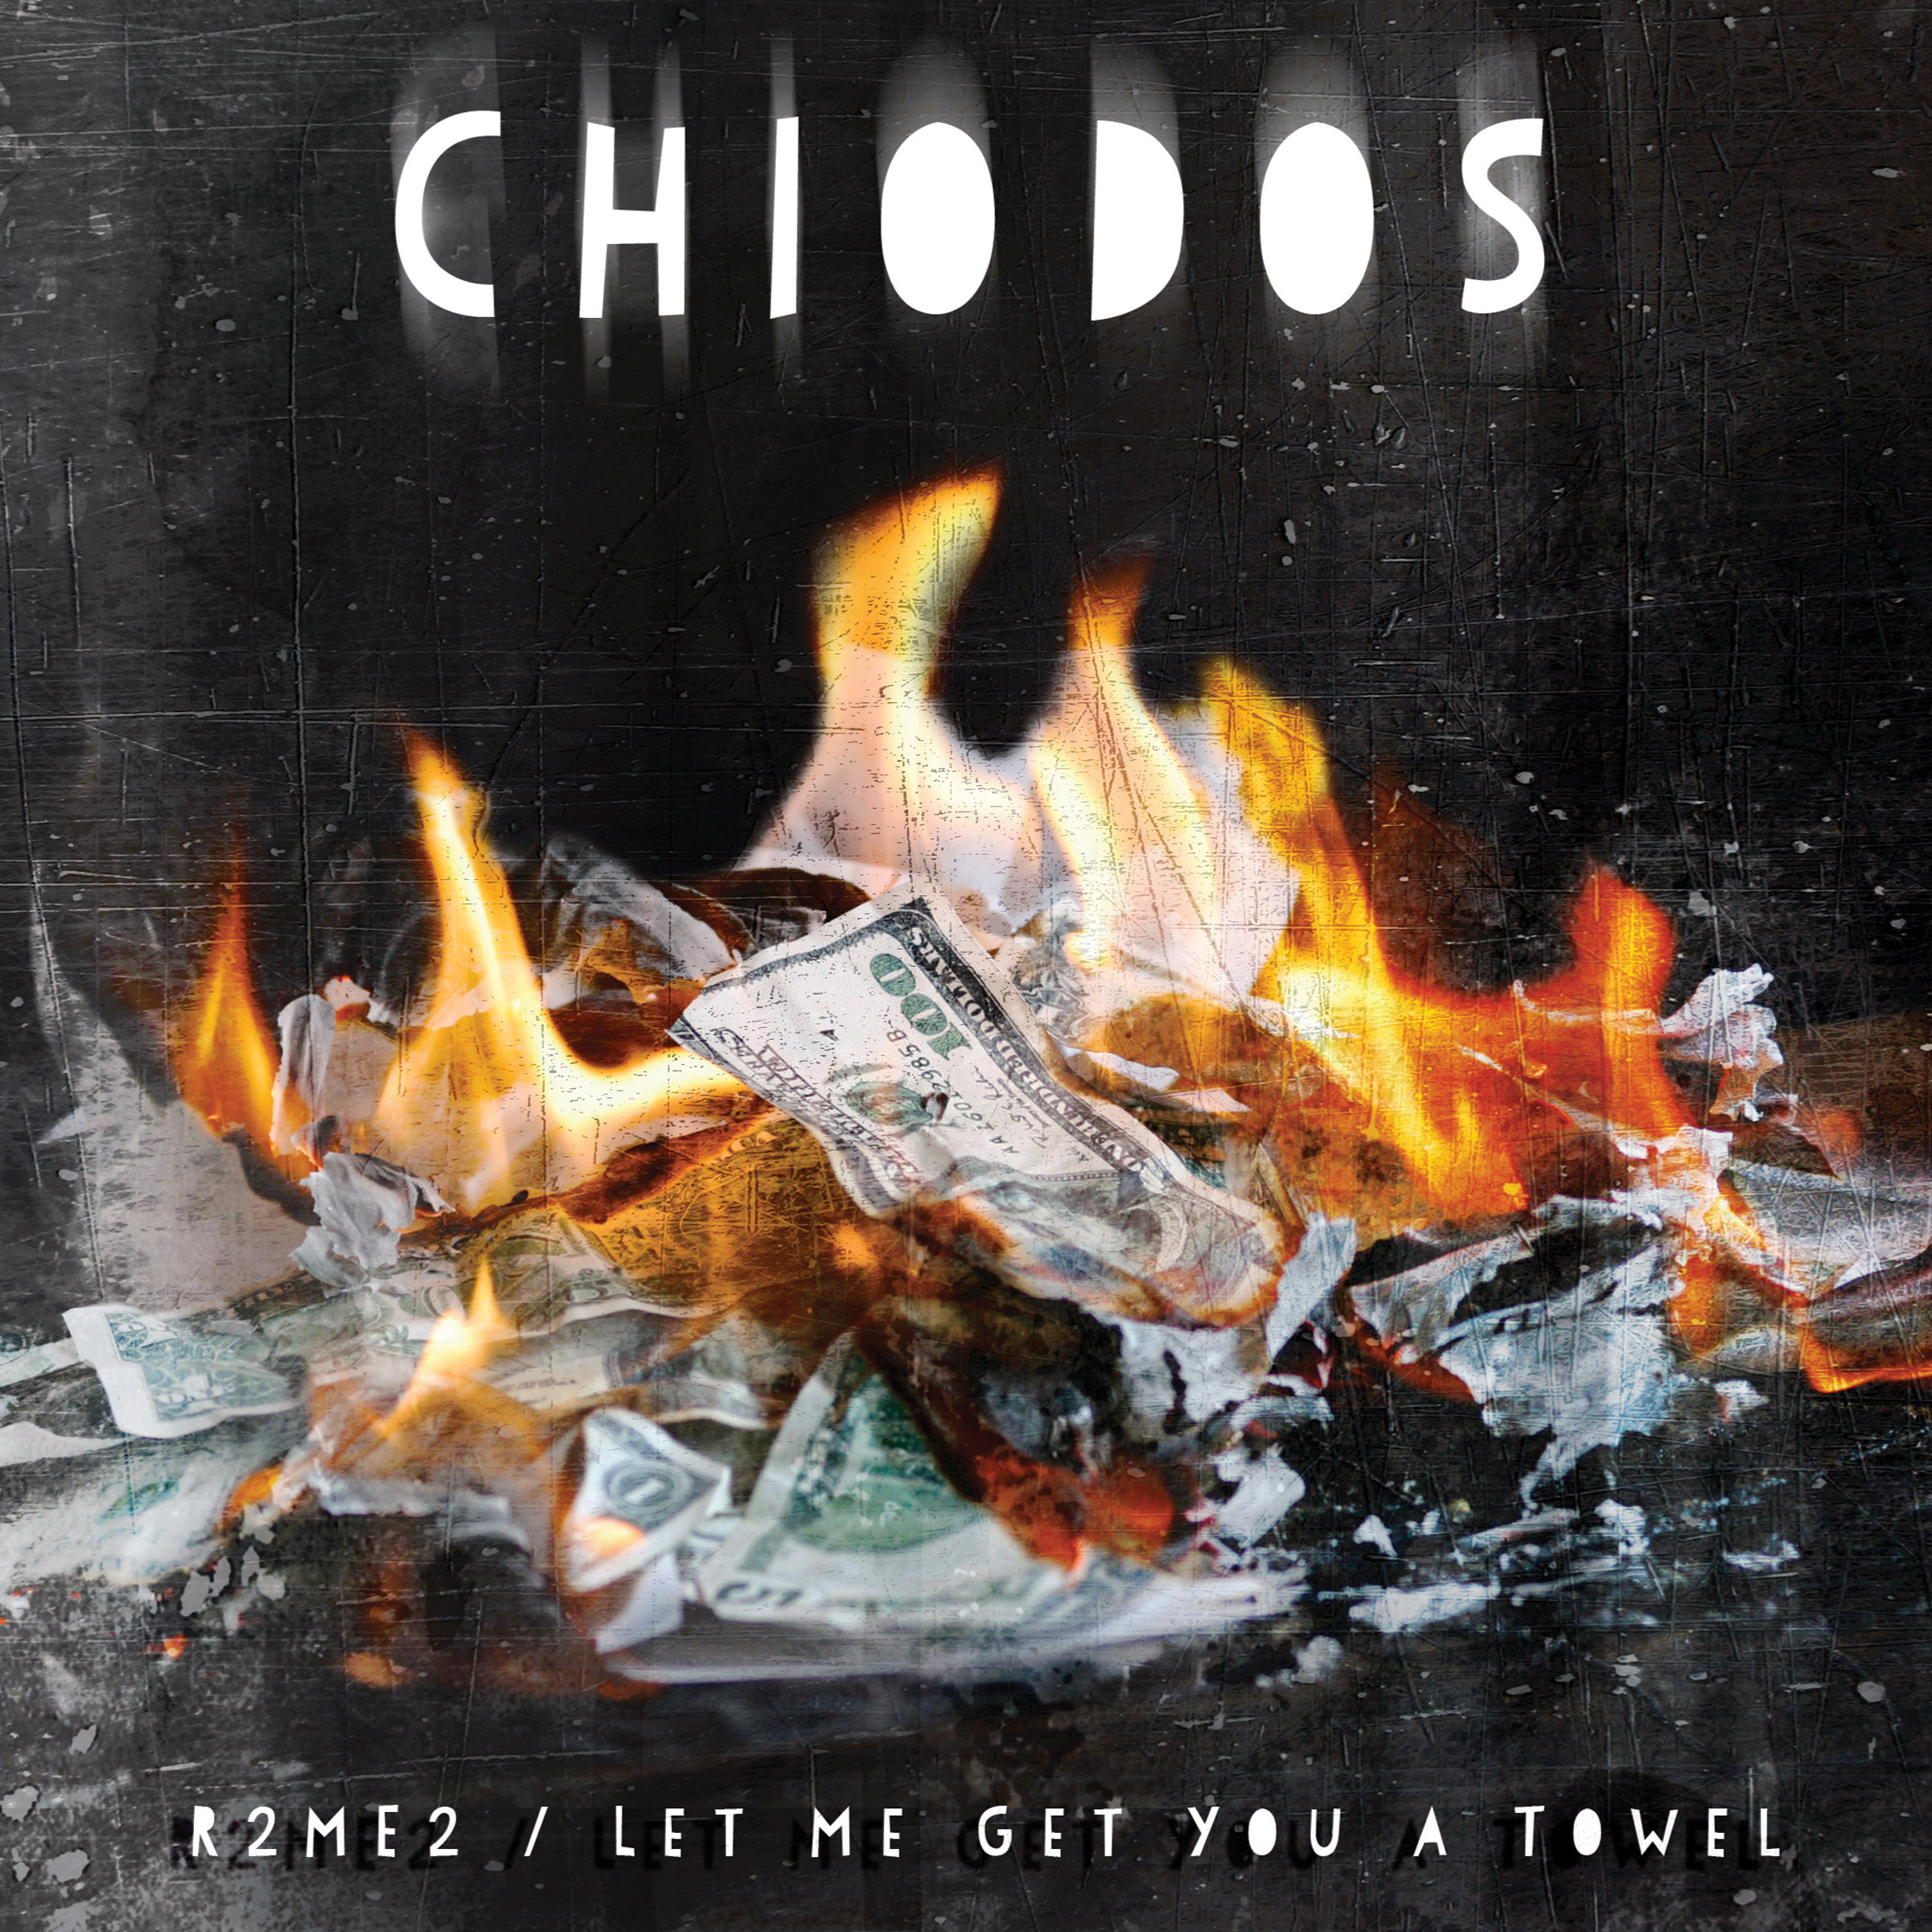 Chiodos - R2ME2/Let Me Get You A Towel